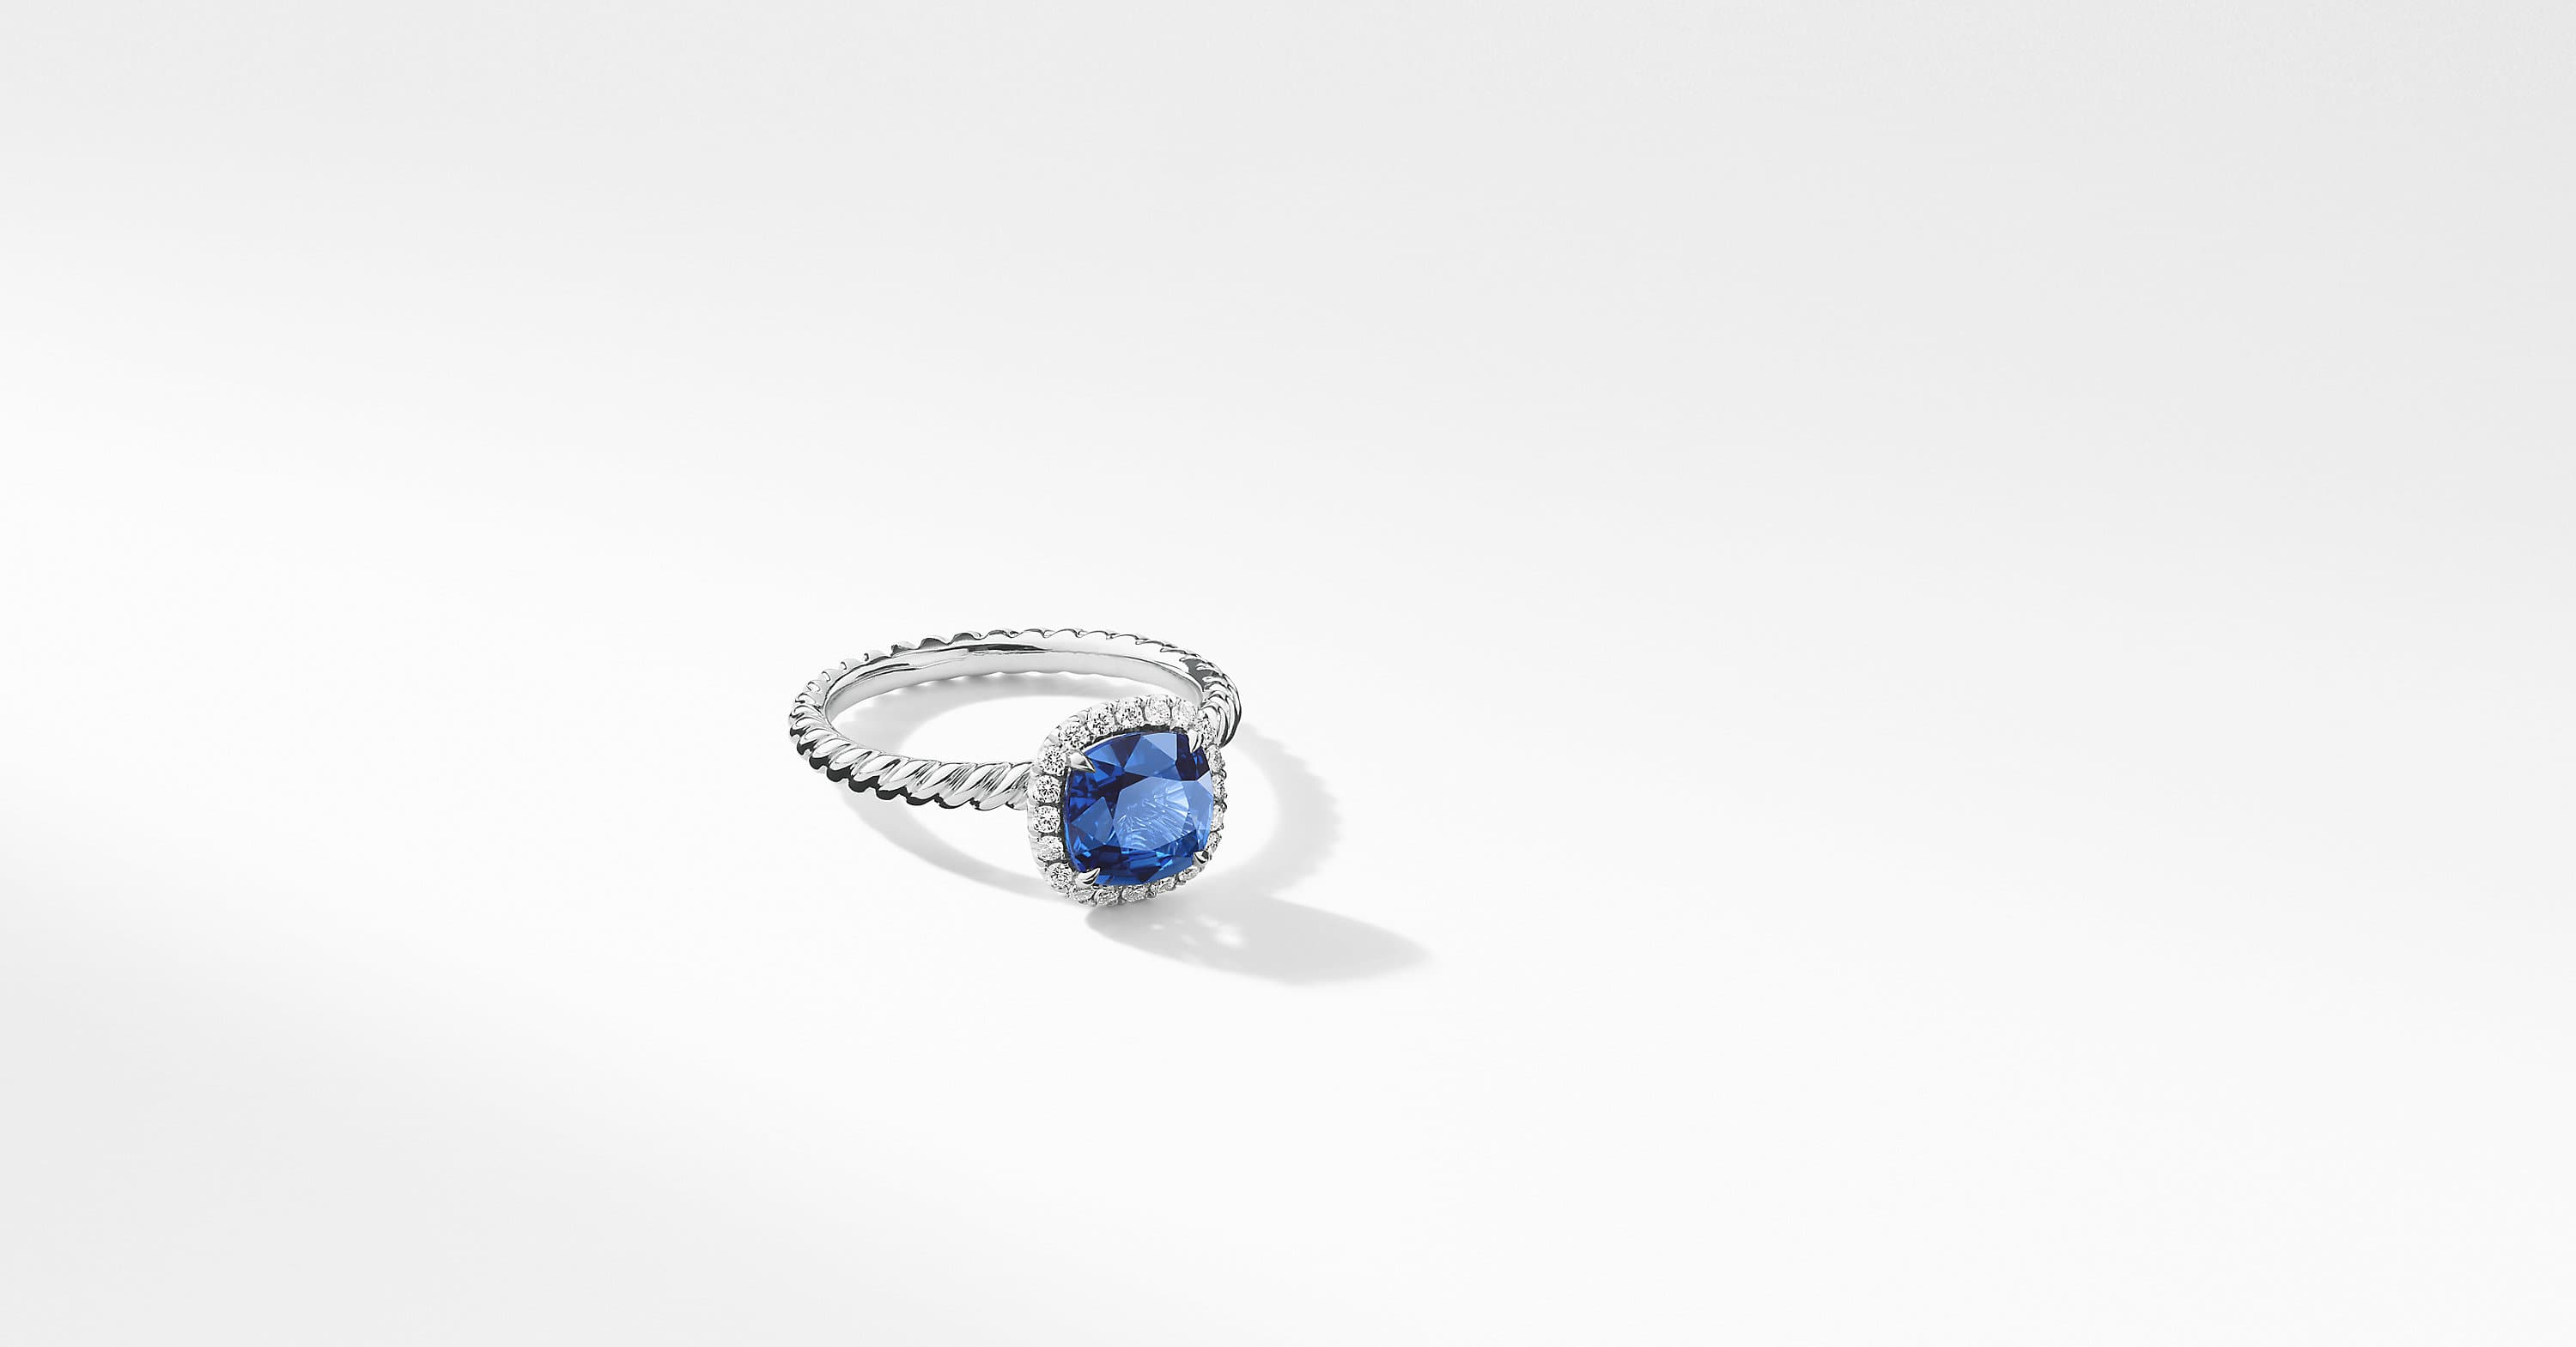 DY Capri Engagement Ring in Platinum with Blue Sapphire, Cushion